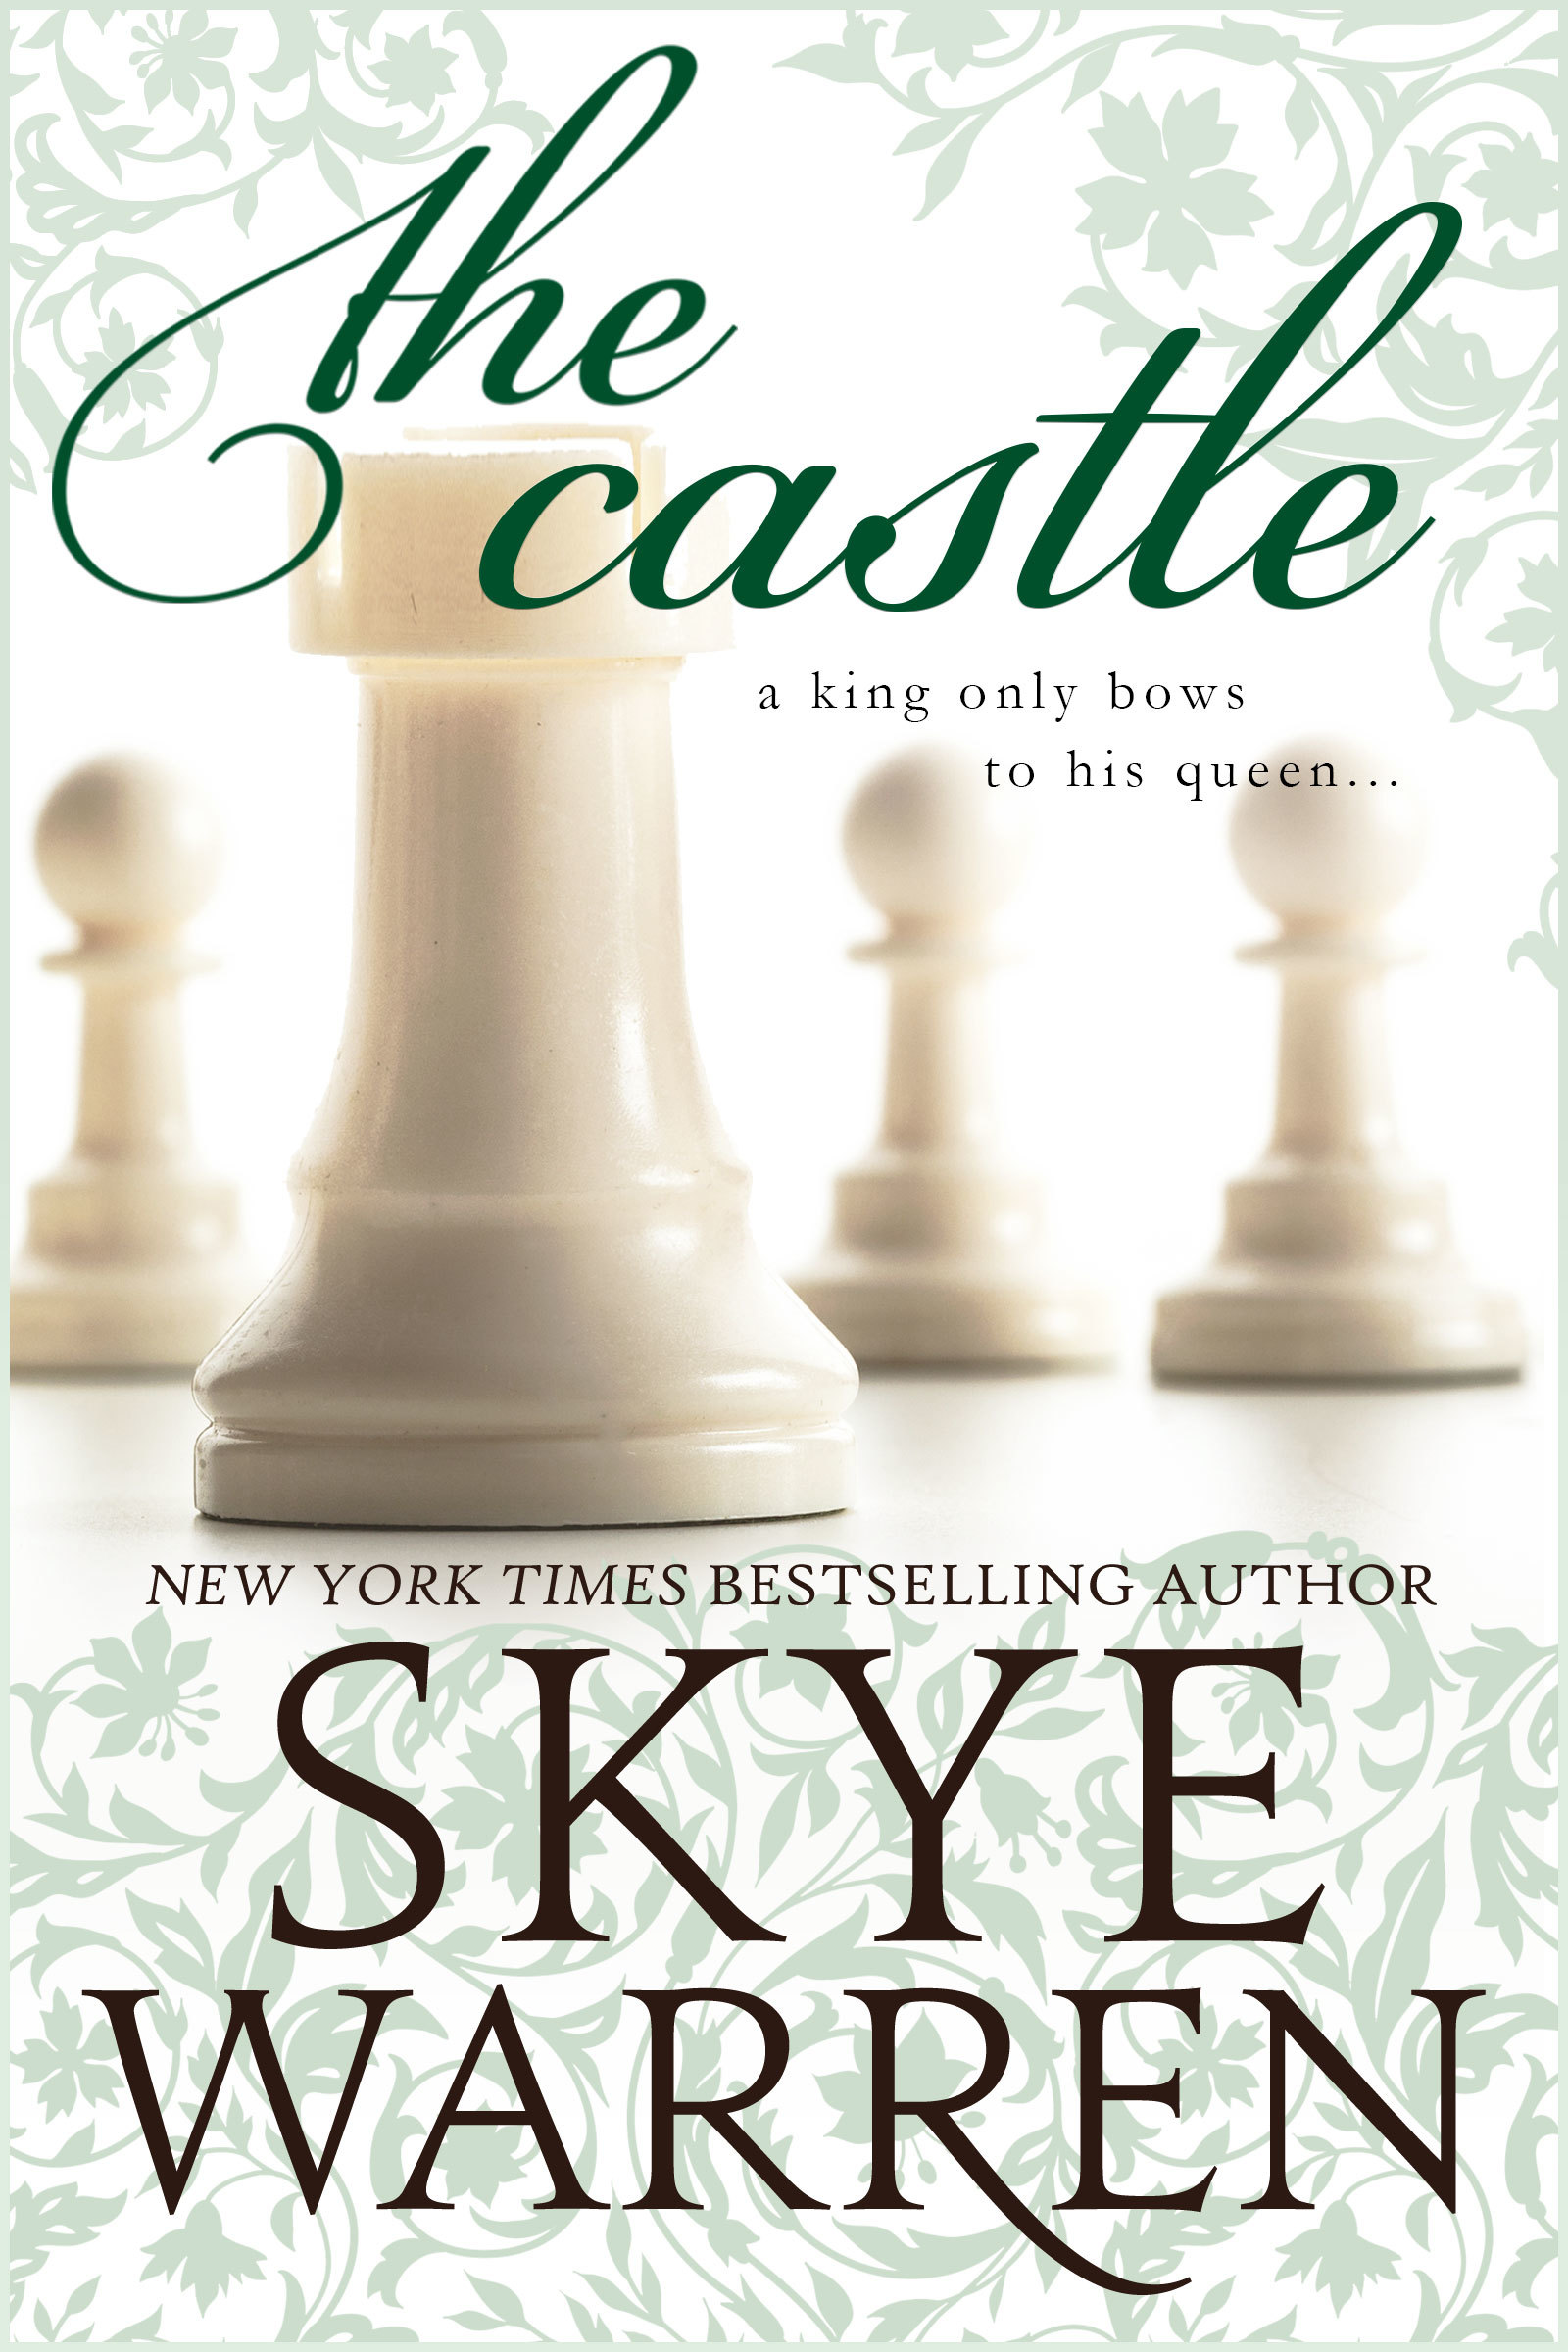 Skye Warren - Endgame 3 - The Castle